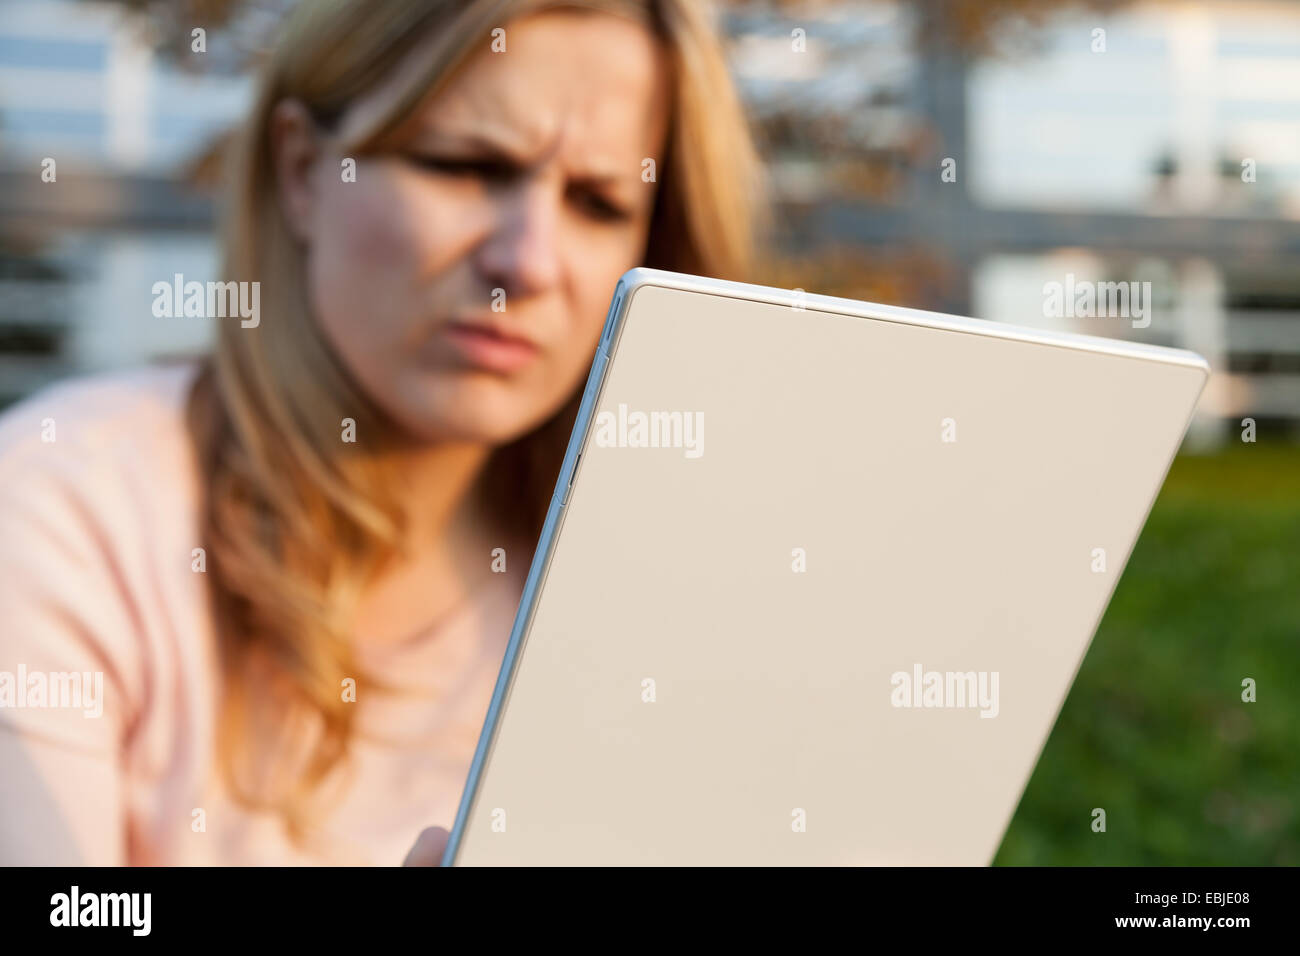 angy woman with a white tablet - Stock Image